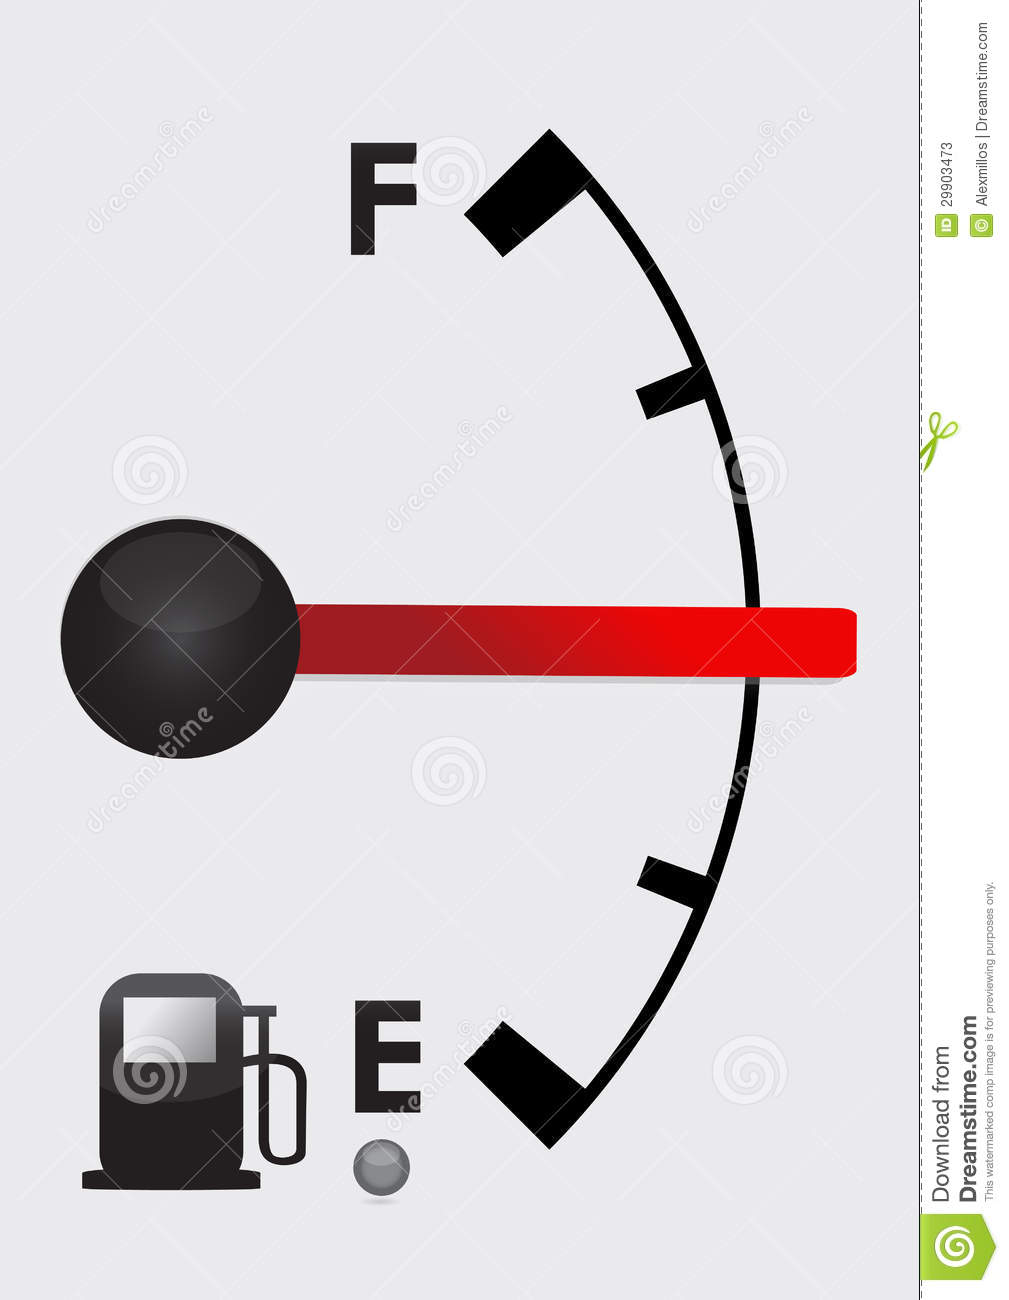 Detailed Gas Tank, Half Full Or Half Empty Stock Illustration -  Illustration of icon, environment: 29903473